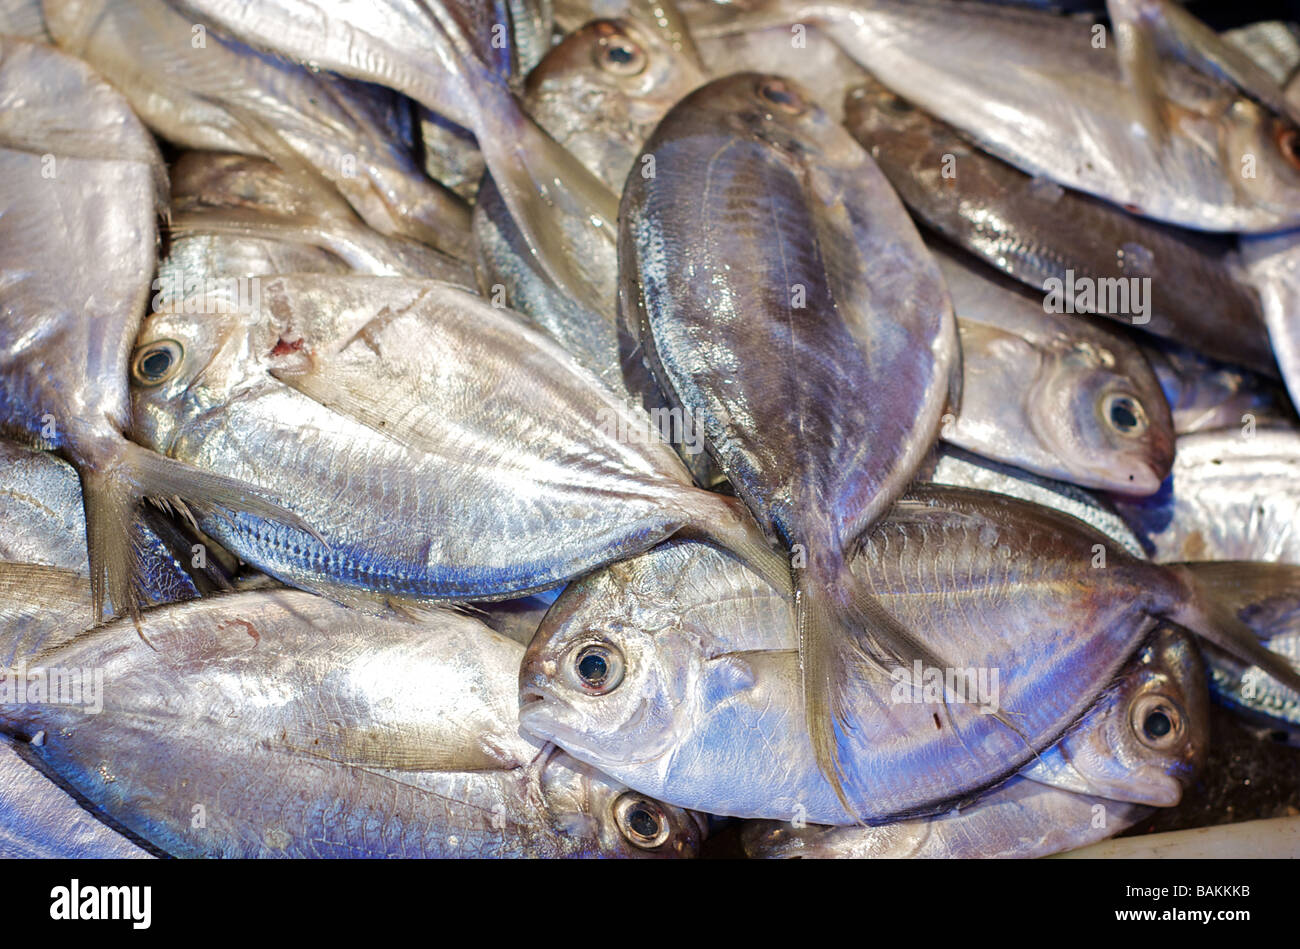 Fresh Pompano Fish on Display at a Seafood Market - Stock Image